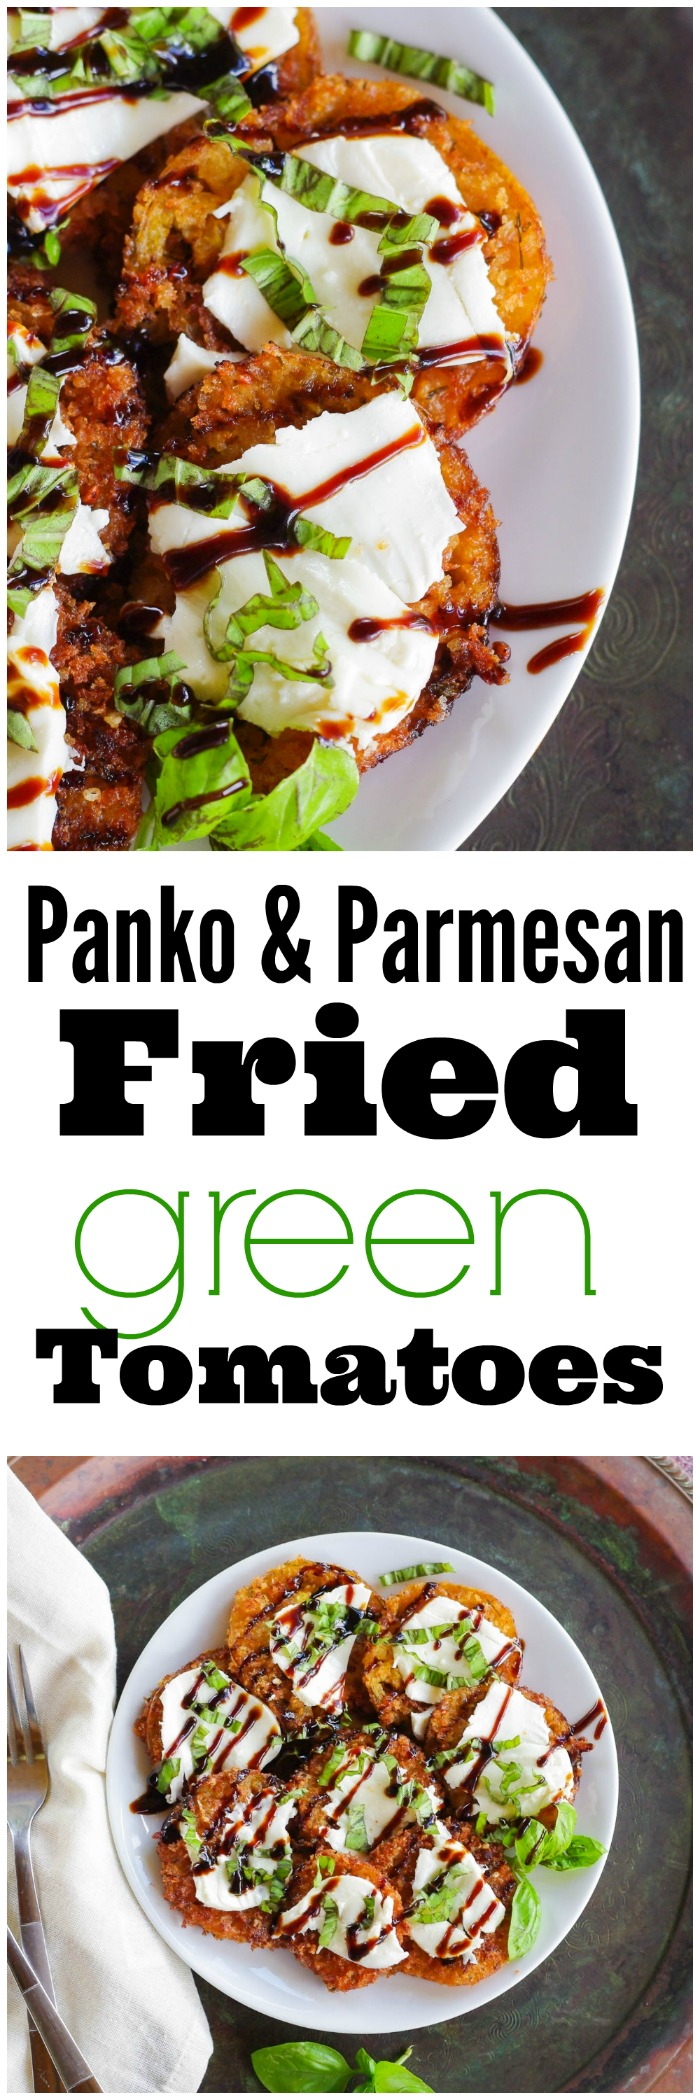 Panko & Parmesan Crusted Fried Green Tomatoes | www.homeandplate.com | Don't throw away those unripe green tomatoes. Turn them into fried green tomatoes topped with fresh mozzarella cheese and chopped basil and finished with a balsamic glaze.